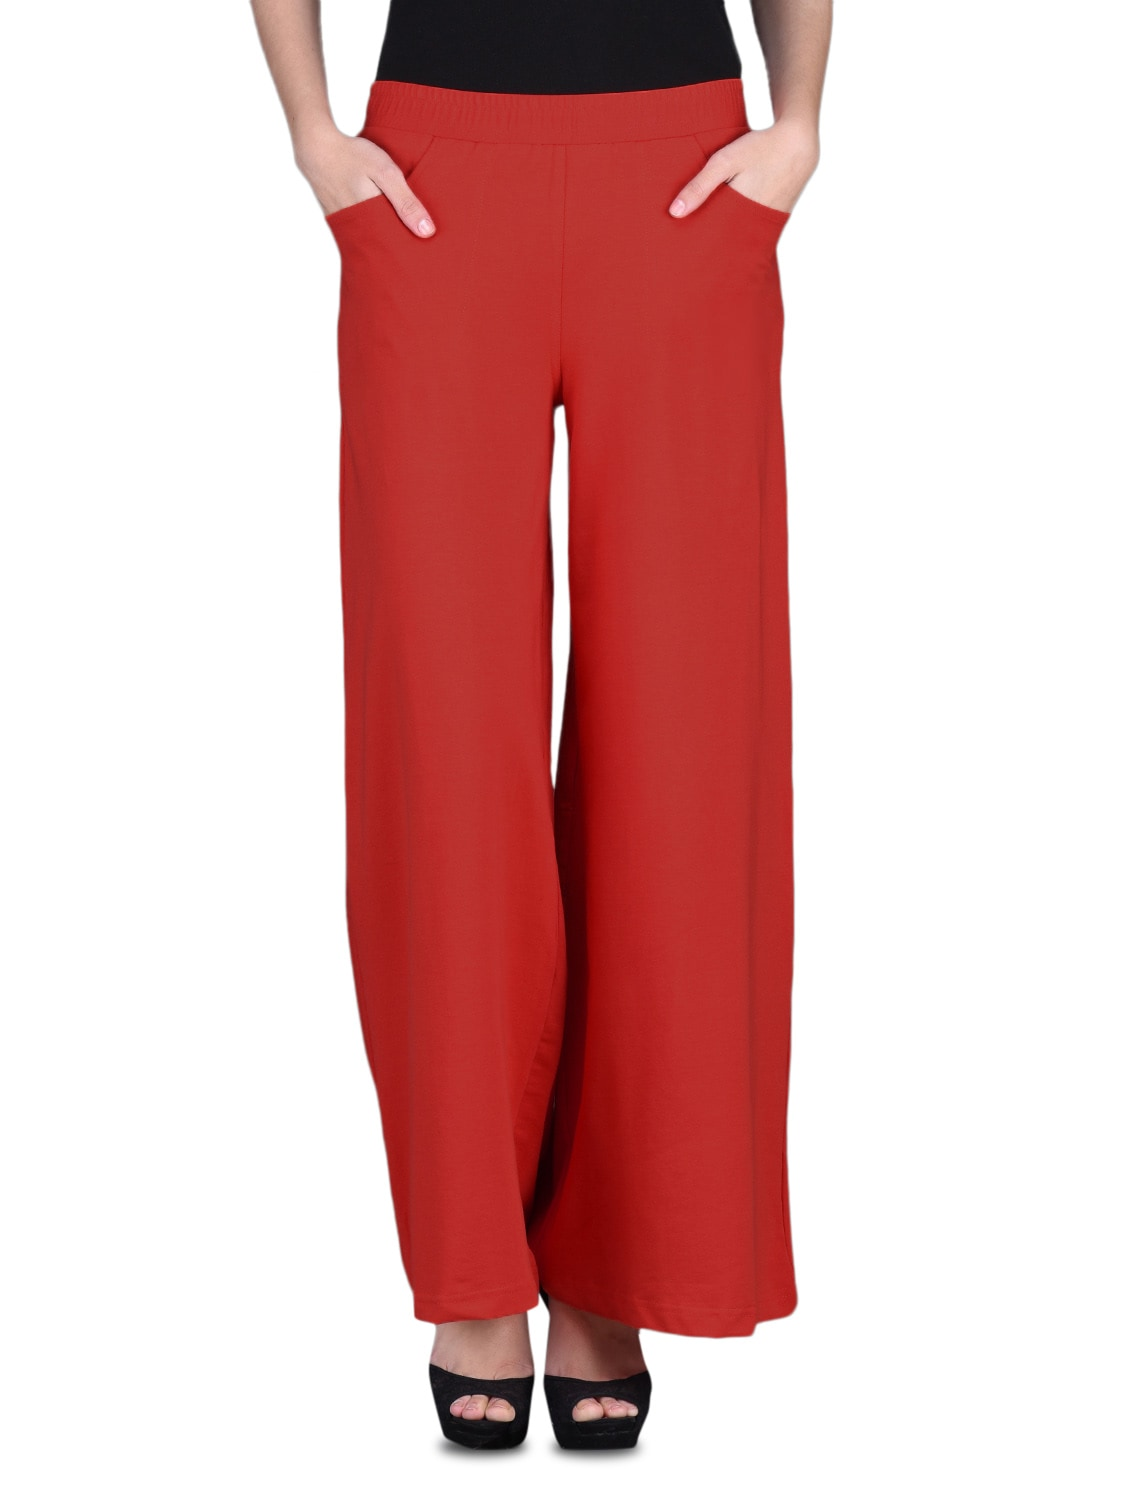 73e67dbaf80 Buy Red Cotton Lycra Knit Palazzo Pants for Women from Finesse for ₹1469 at  0% off